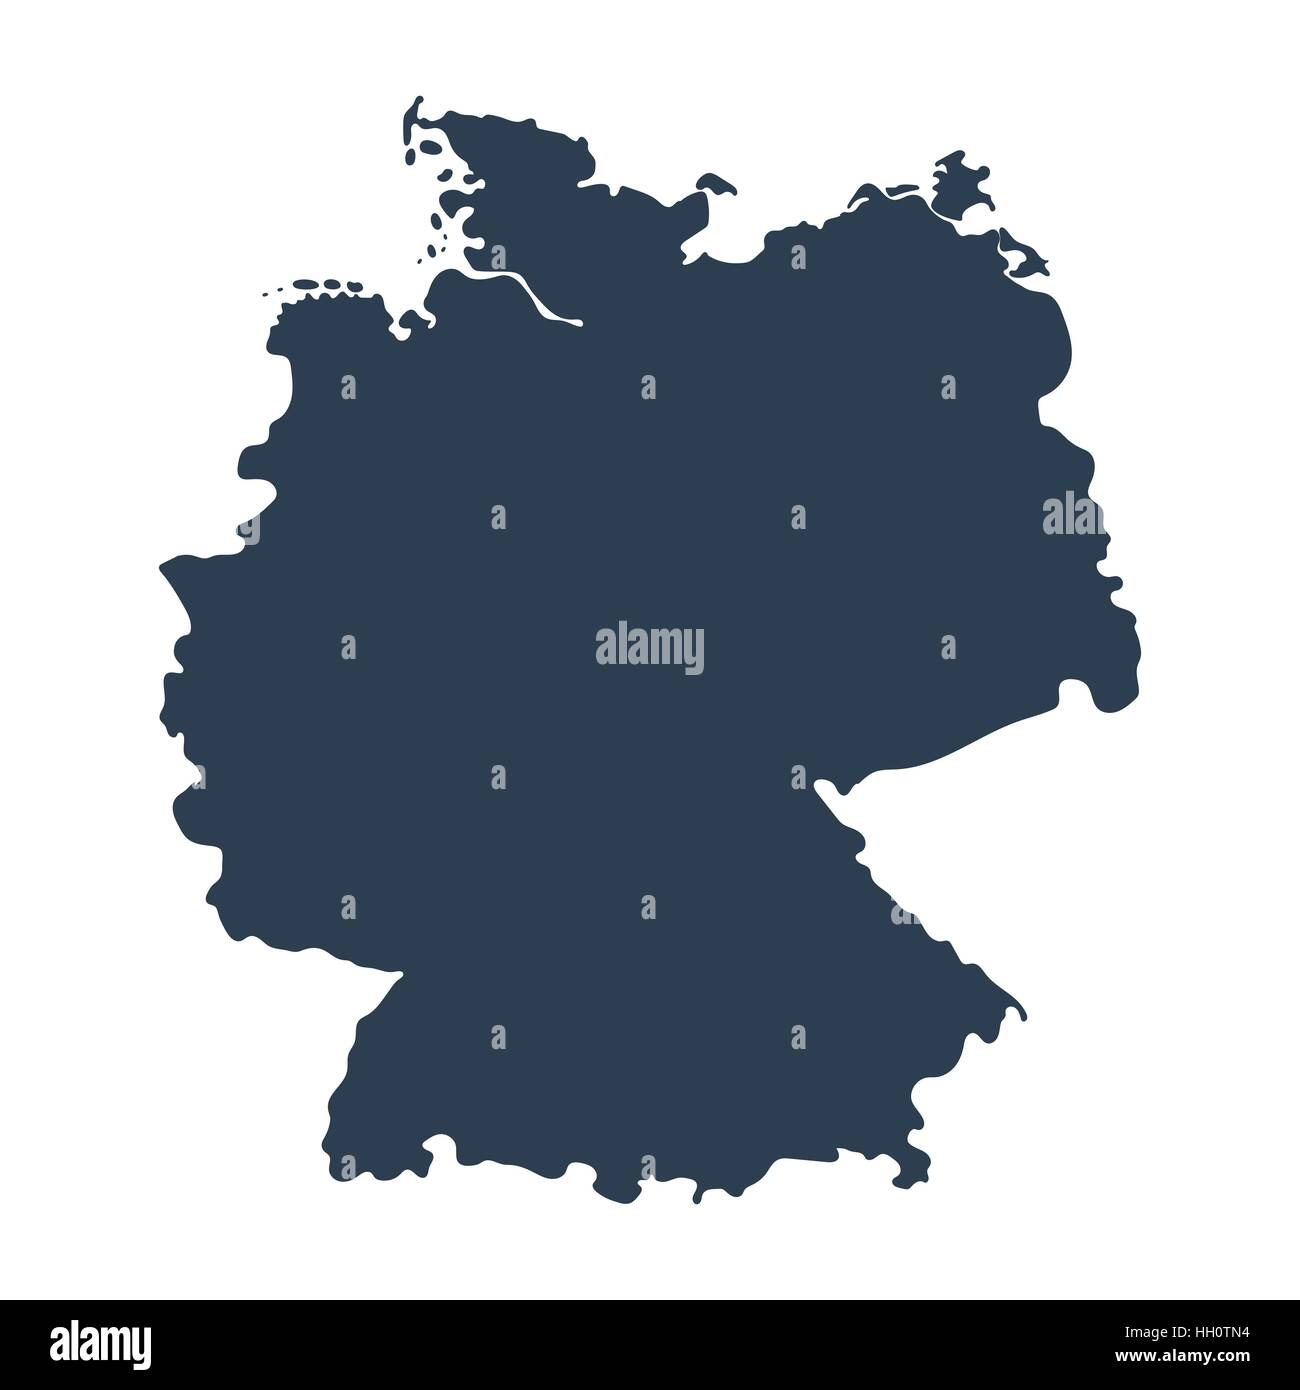 Map of Germany isolated on white background - Stock Vector